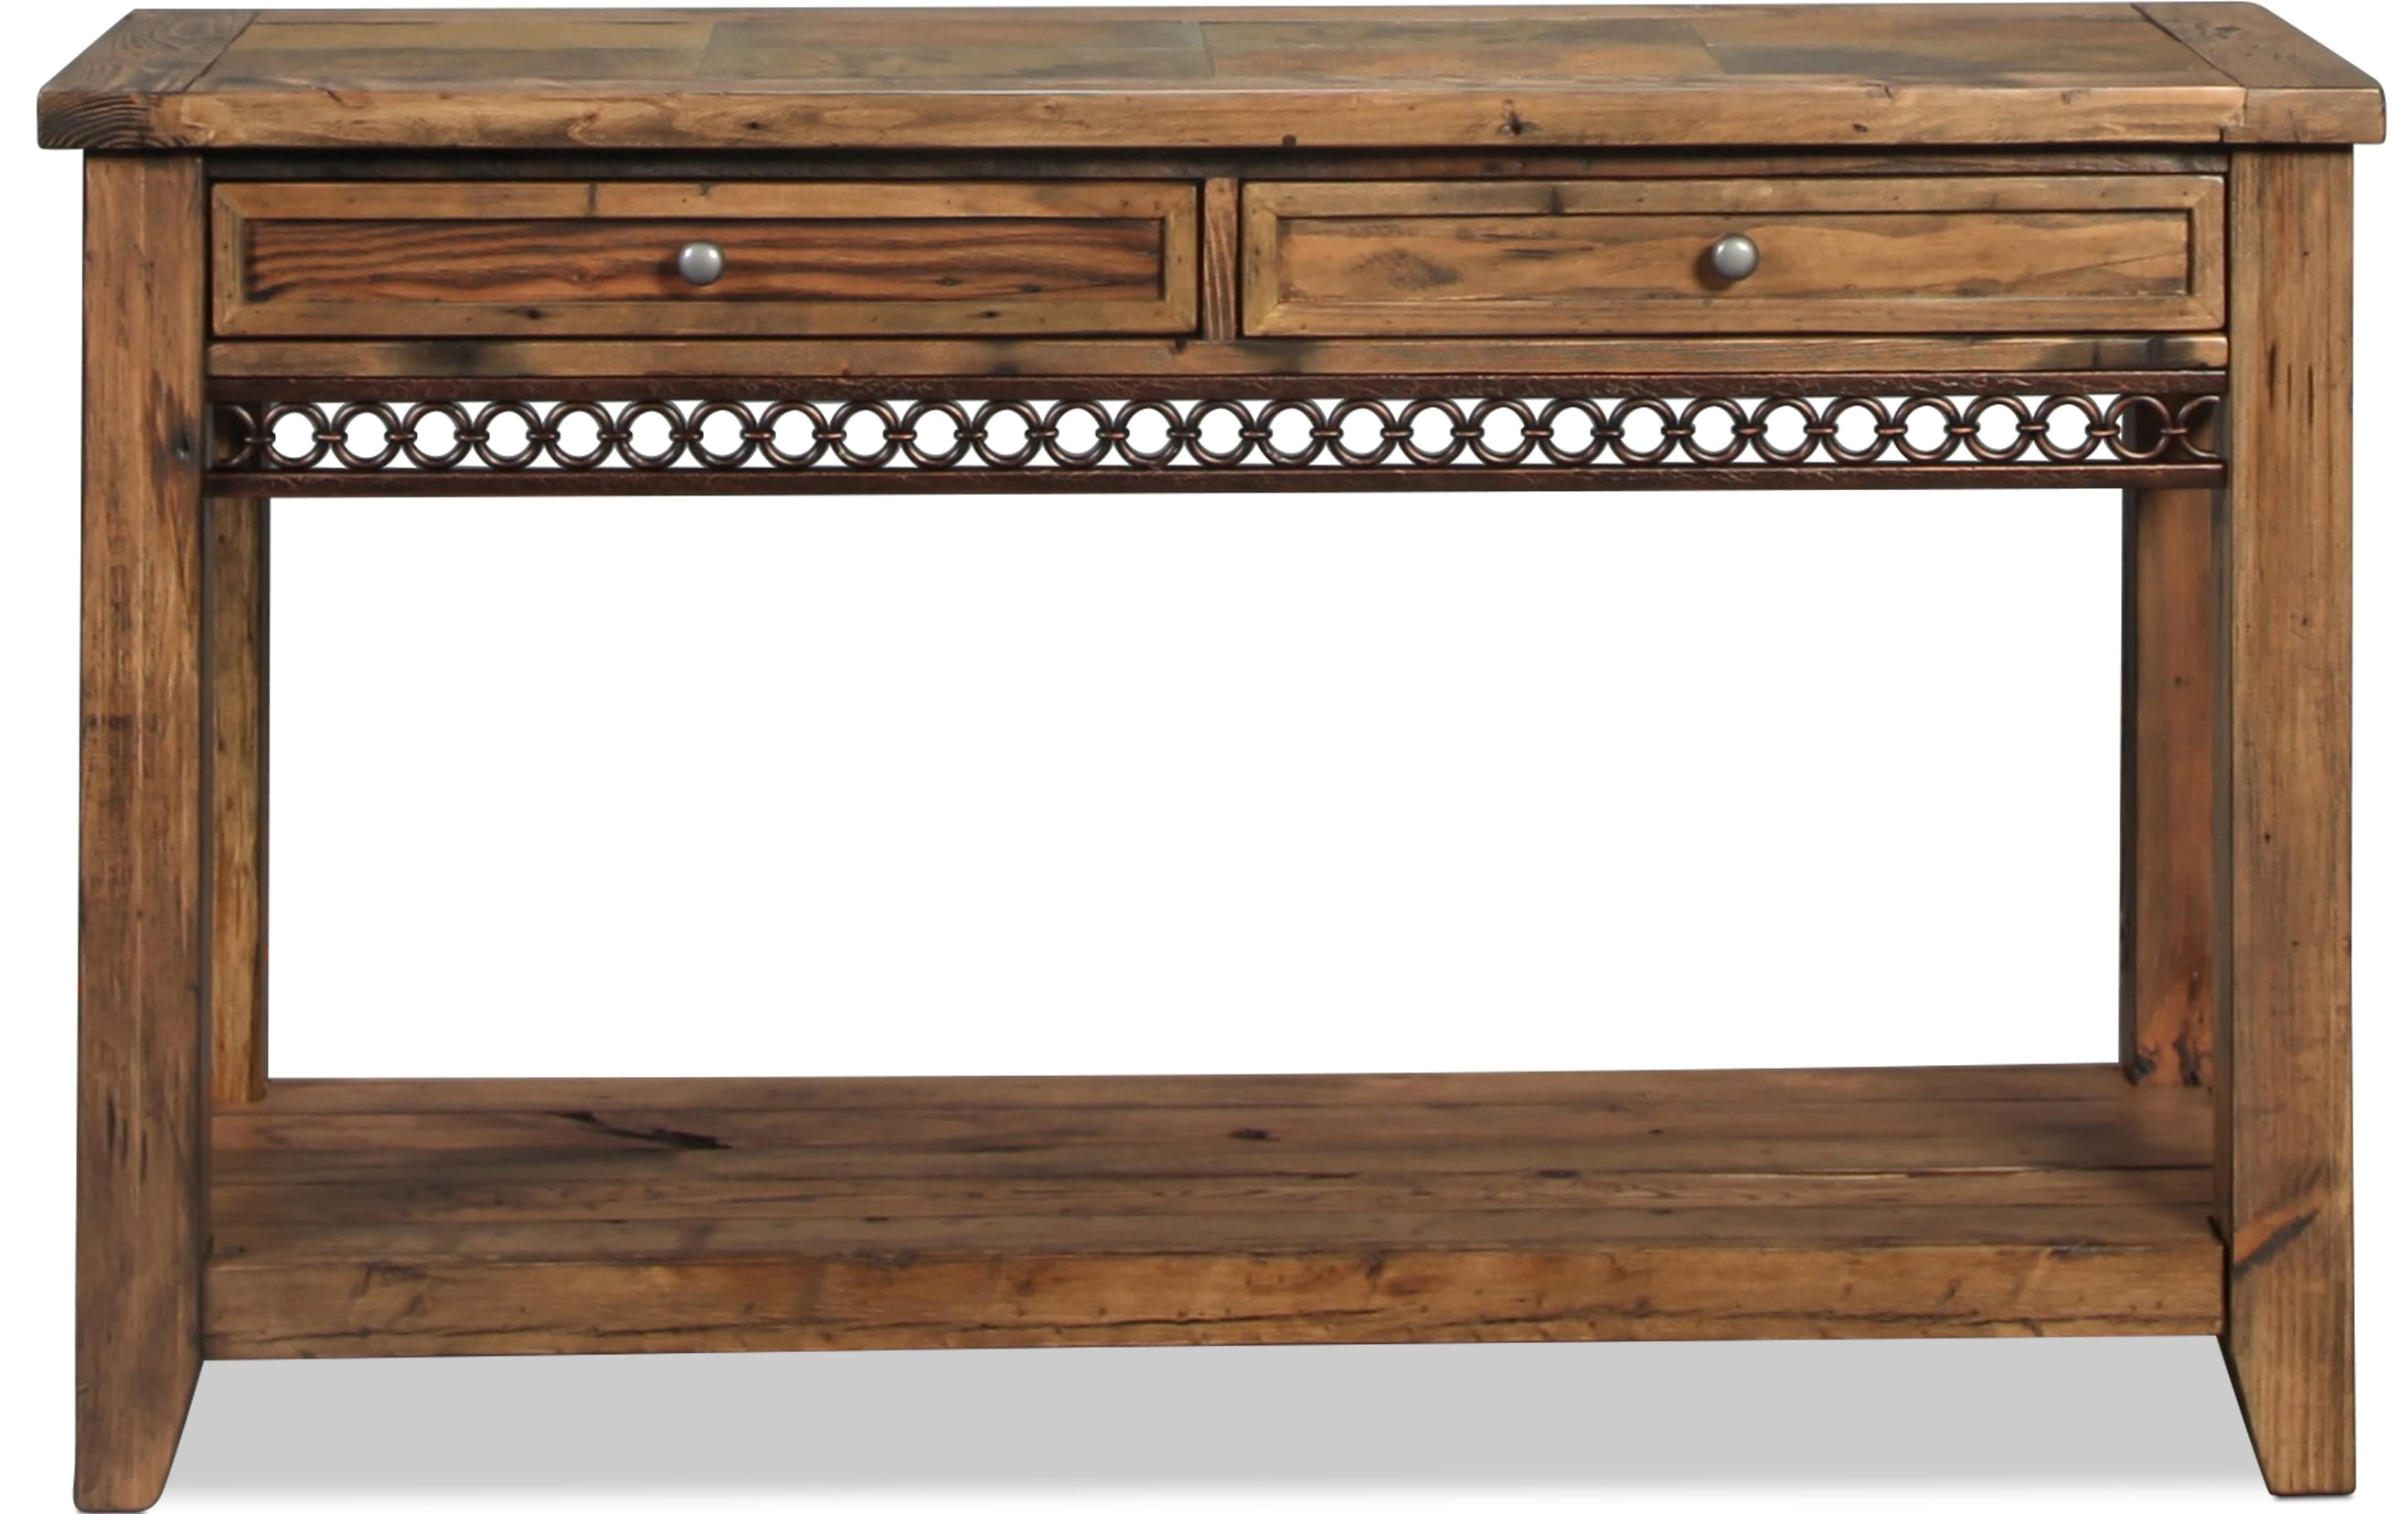 Pierson Sofa Table - Slate and Weathered Pine